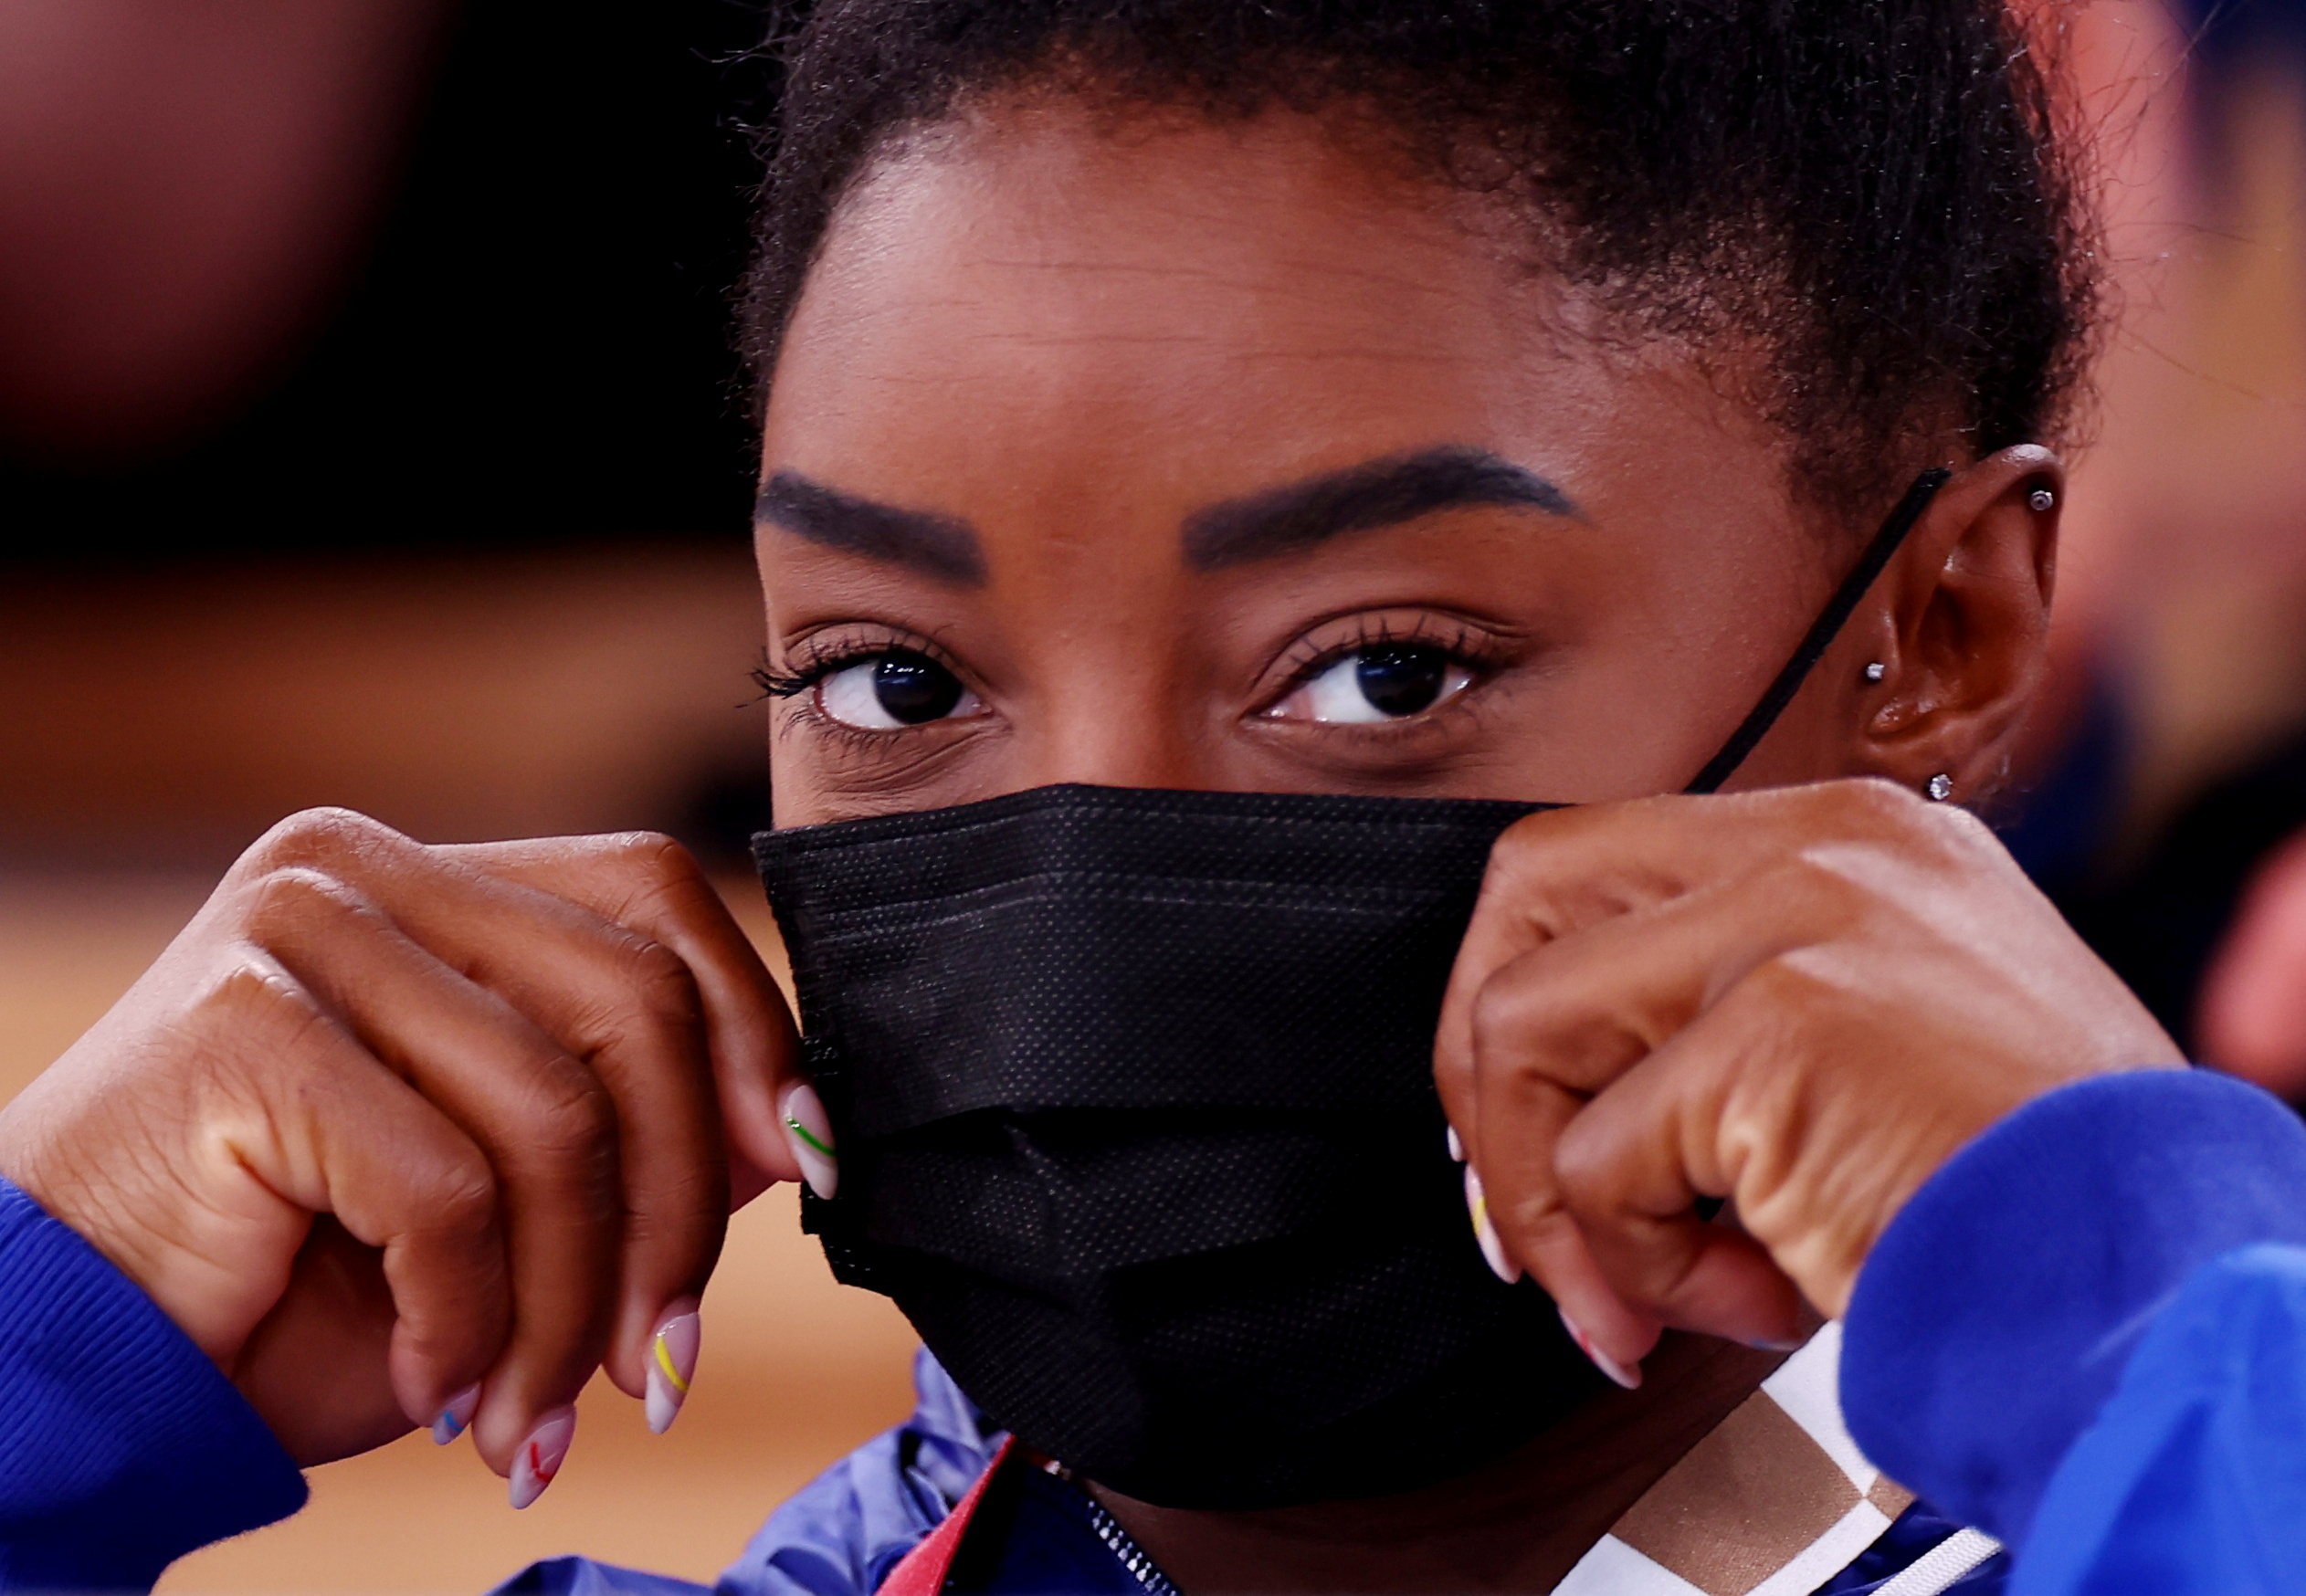 Tokyo 2020 Olympics - Gymnastics - Artistic - Men's Rings - Medal Ceremony - Ariake Gymnastics Centre, Tokyo, Japan - August 2, 2021. Simone Biles of the United States wearing a protective face mask looks on REUTERS/Mike Blake